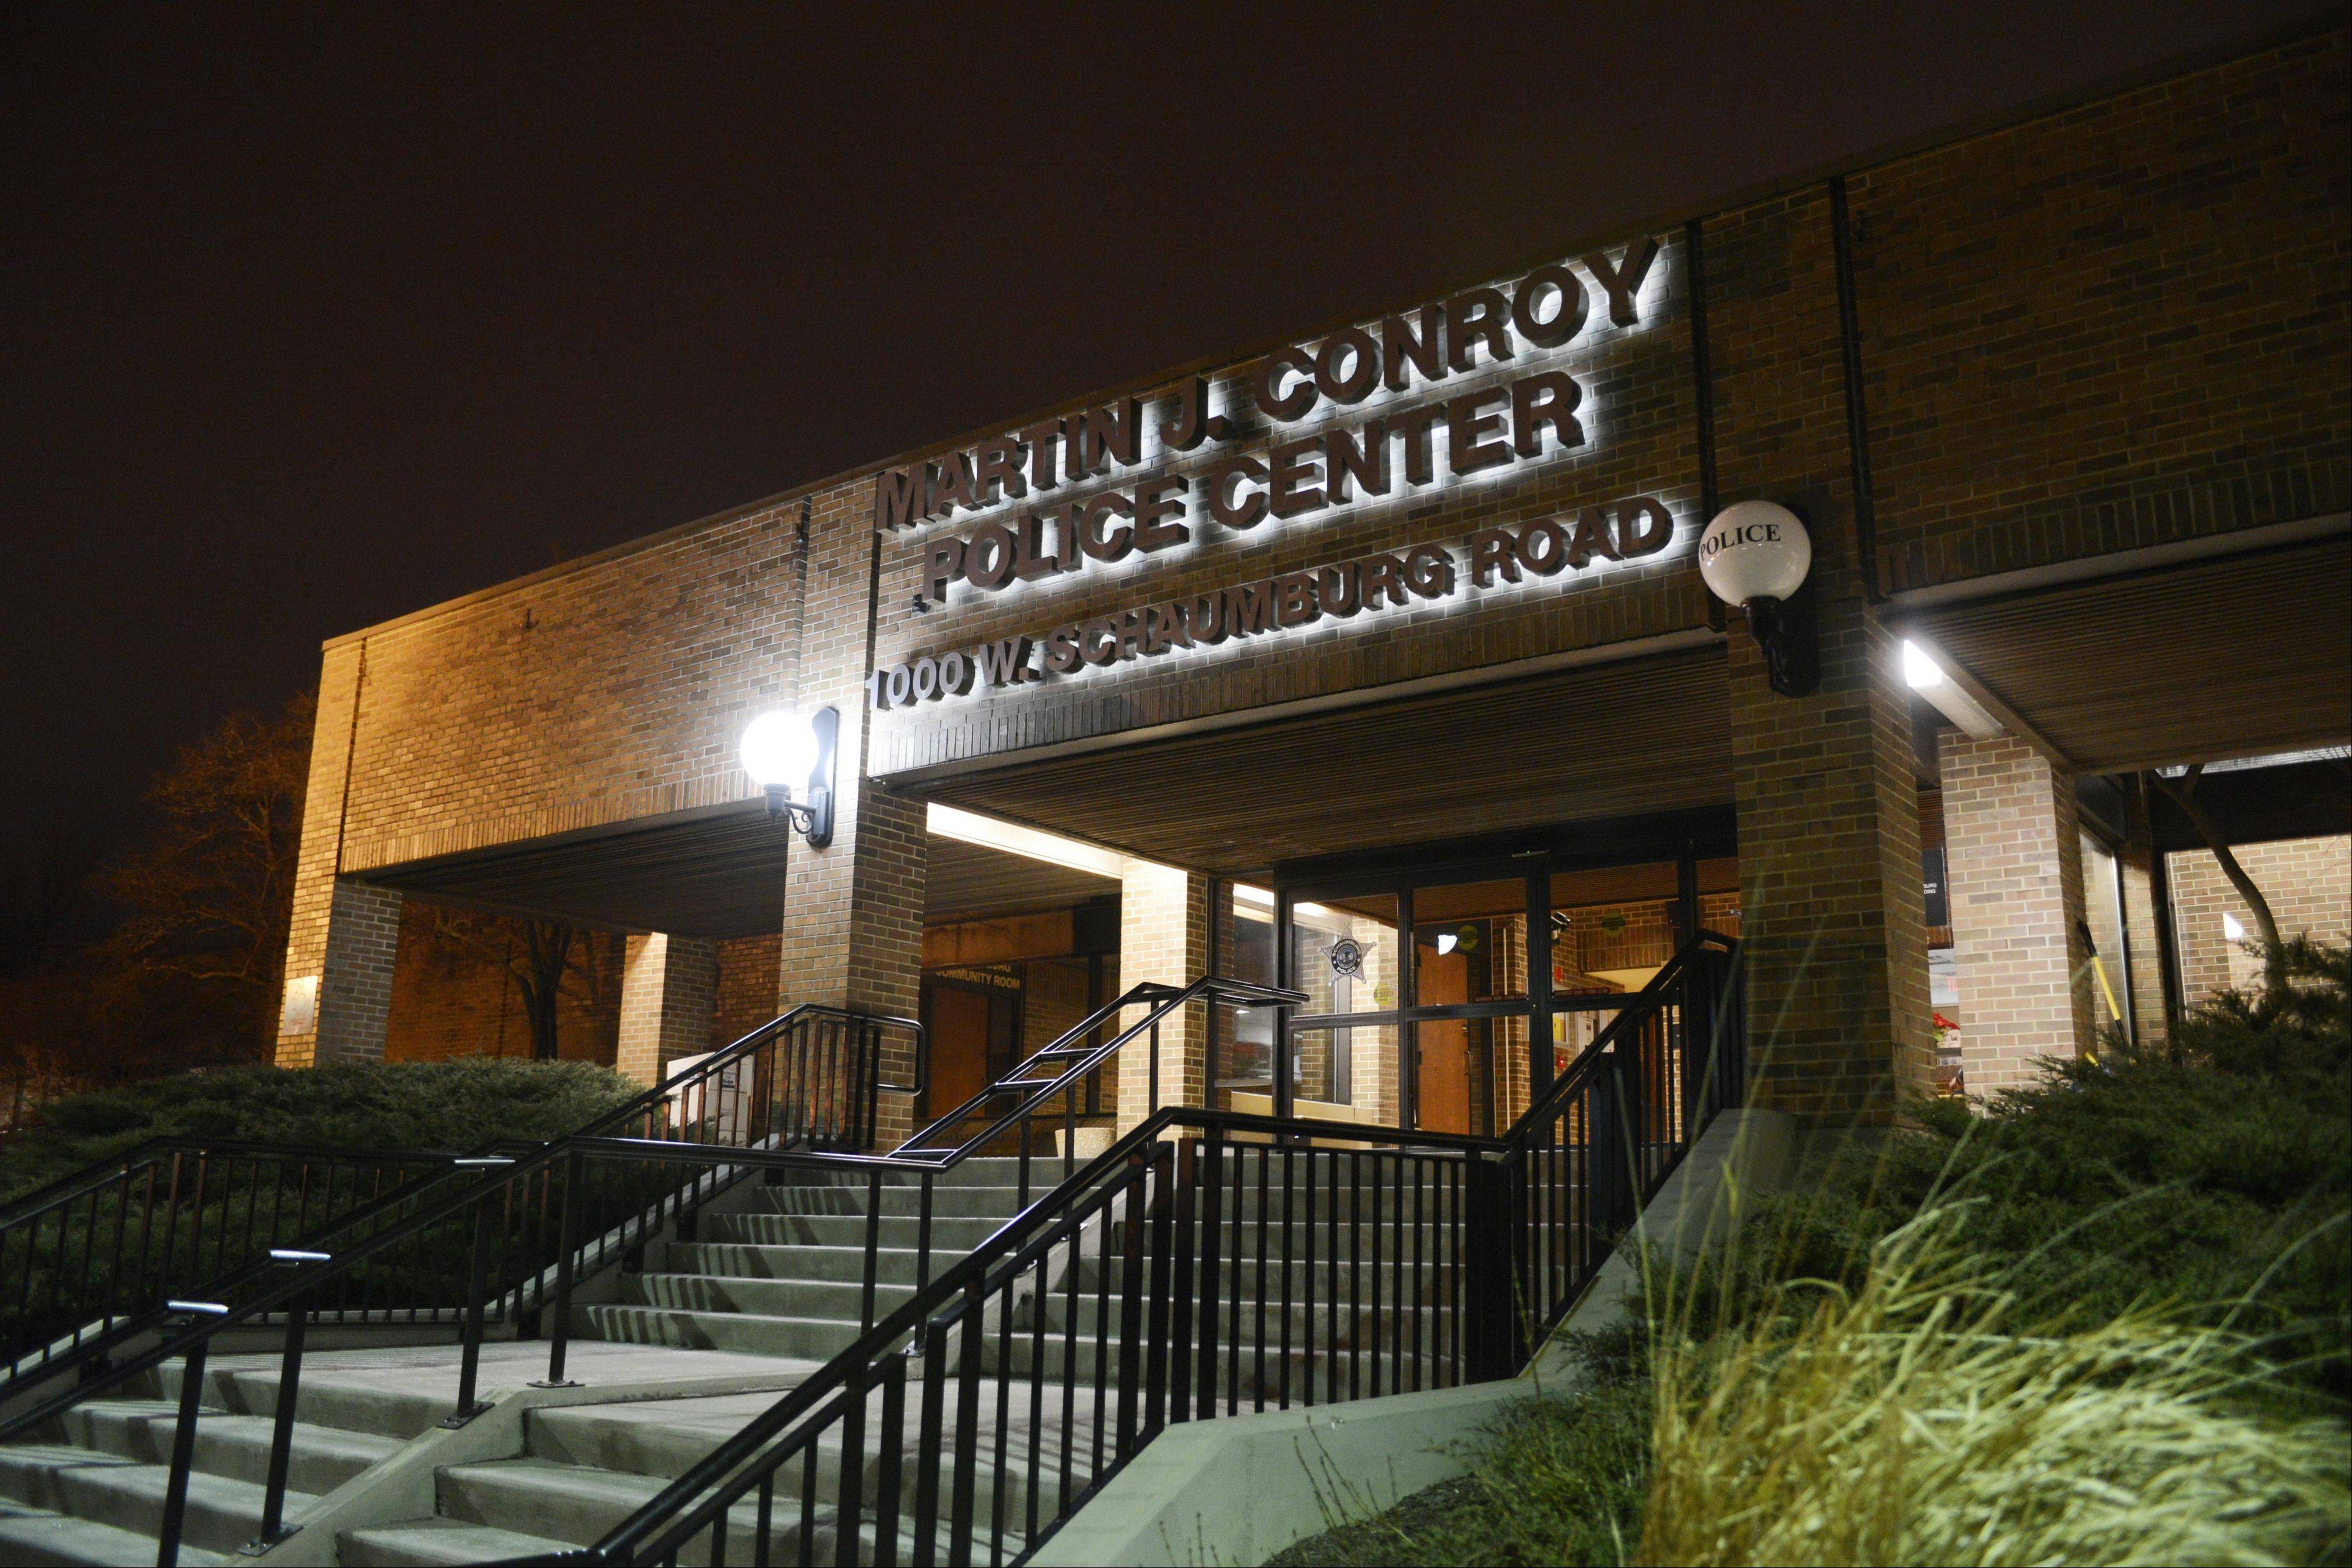 Federal agents from the U.S. Drug Enforcement Administration reportedly served search warrants Wednesday at the Schaumburg police department after the arrest of three village police officers on drug-related charges.